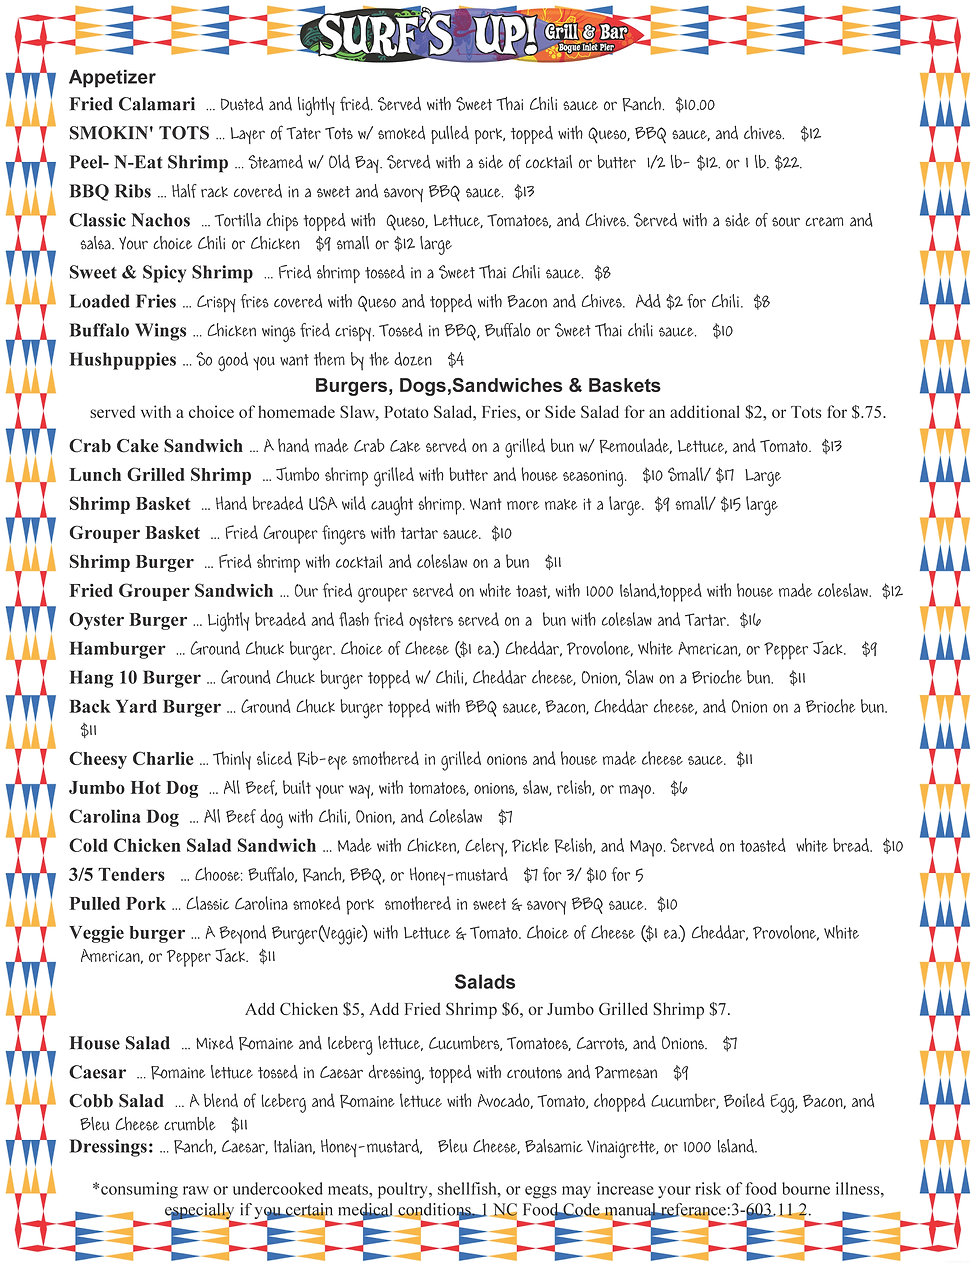 Surf's Up Emerald Isle NC Lunch Menu